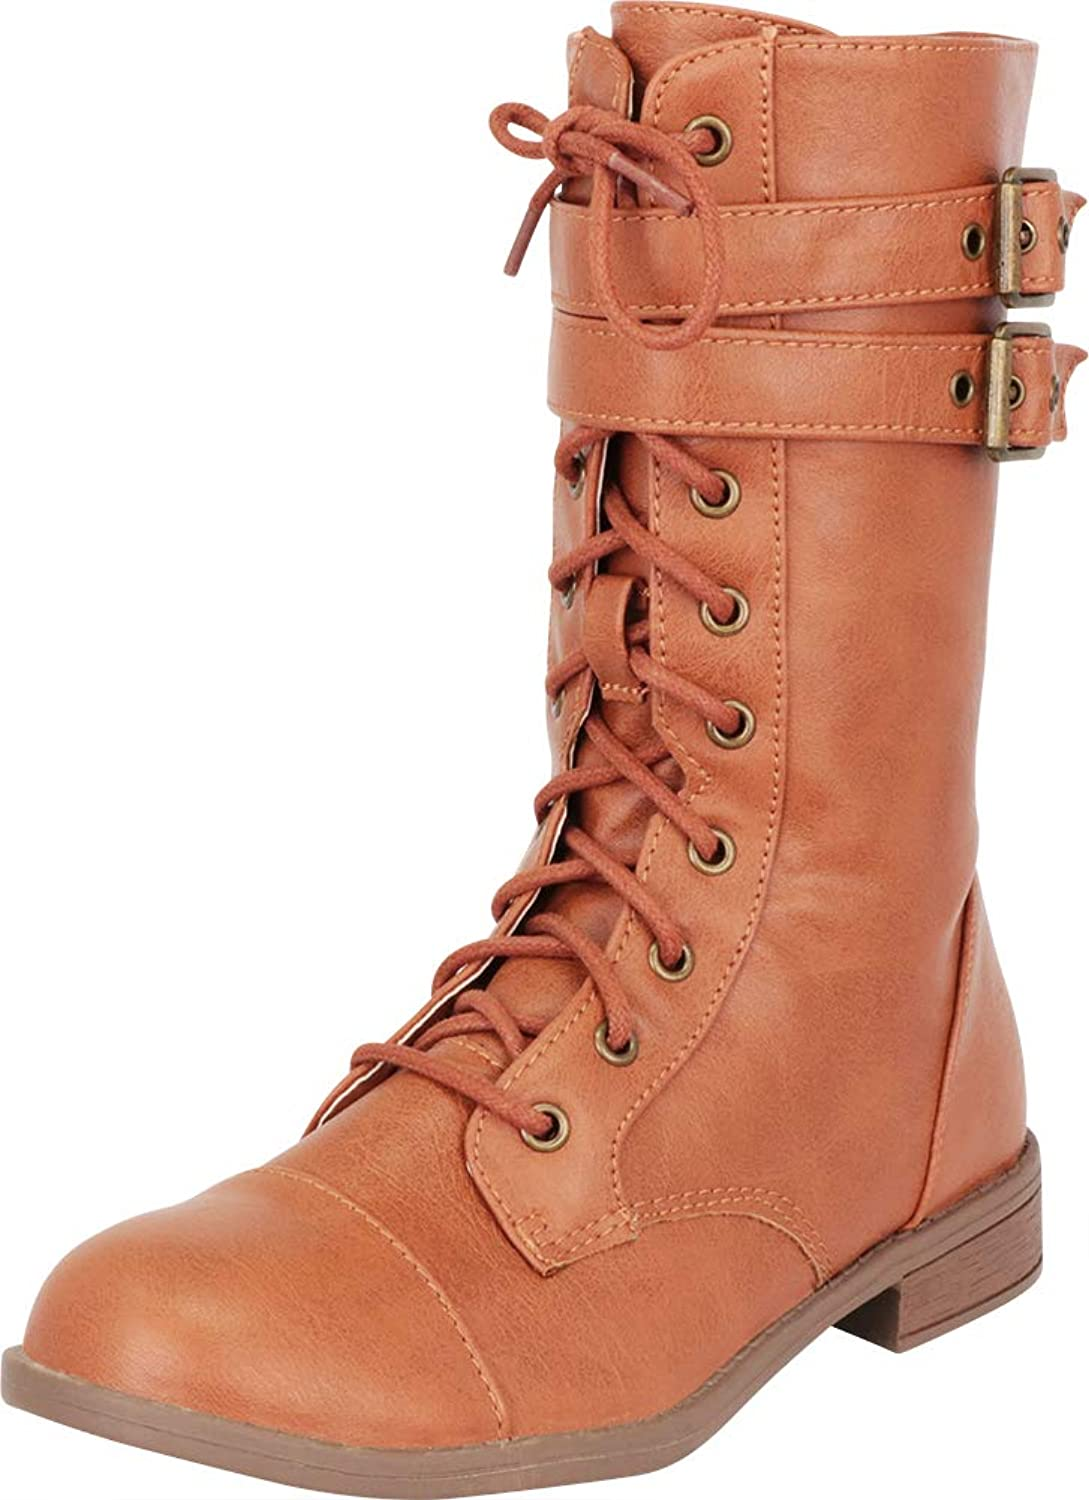 Cambridge Select Women's Strappy Double Buckle Lace-Up Low Heel Combat Boot